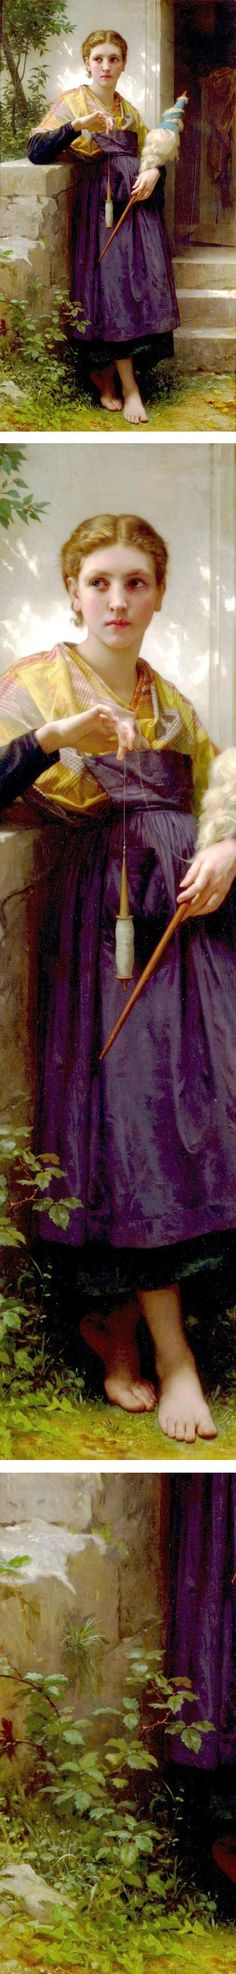 The Spinner, William-Adolphe Bouguereau, WikiPaintings